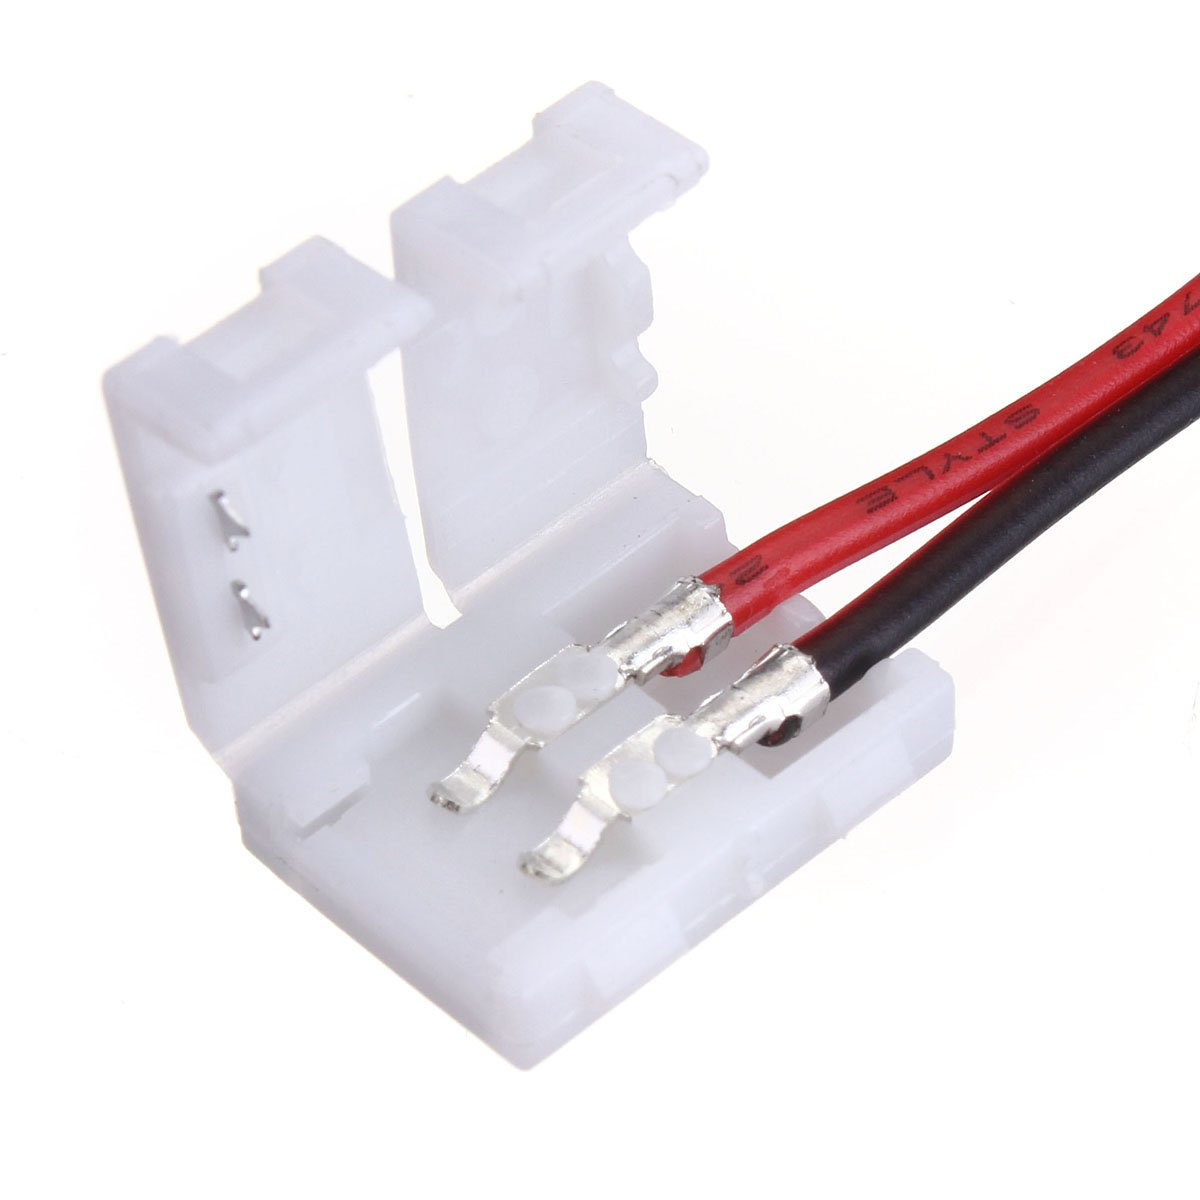 Lights & Lighting - 2-Pins Power Connector Adaptor For 3528/5050 Led Strip Wire Pcb - Solderless Strip Connector Light Flex Tape 3528 Lighting Ever 5000028 B019q3u72m Tail 2-Pins by Unknown (Image #4)